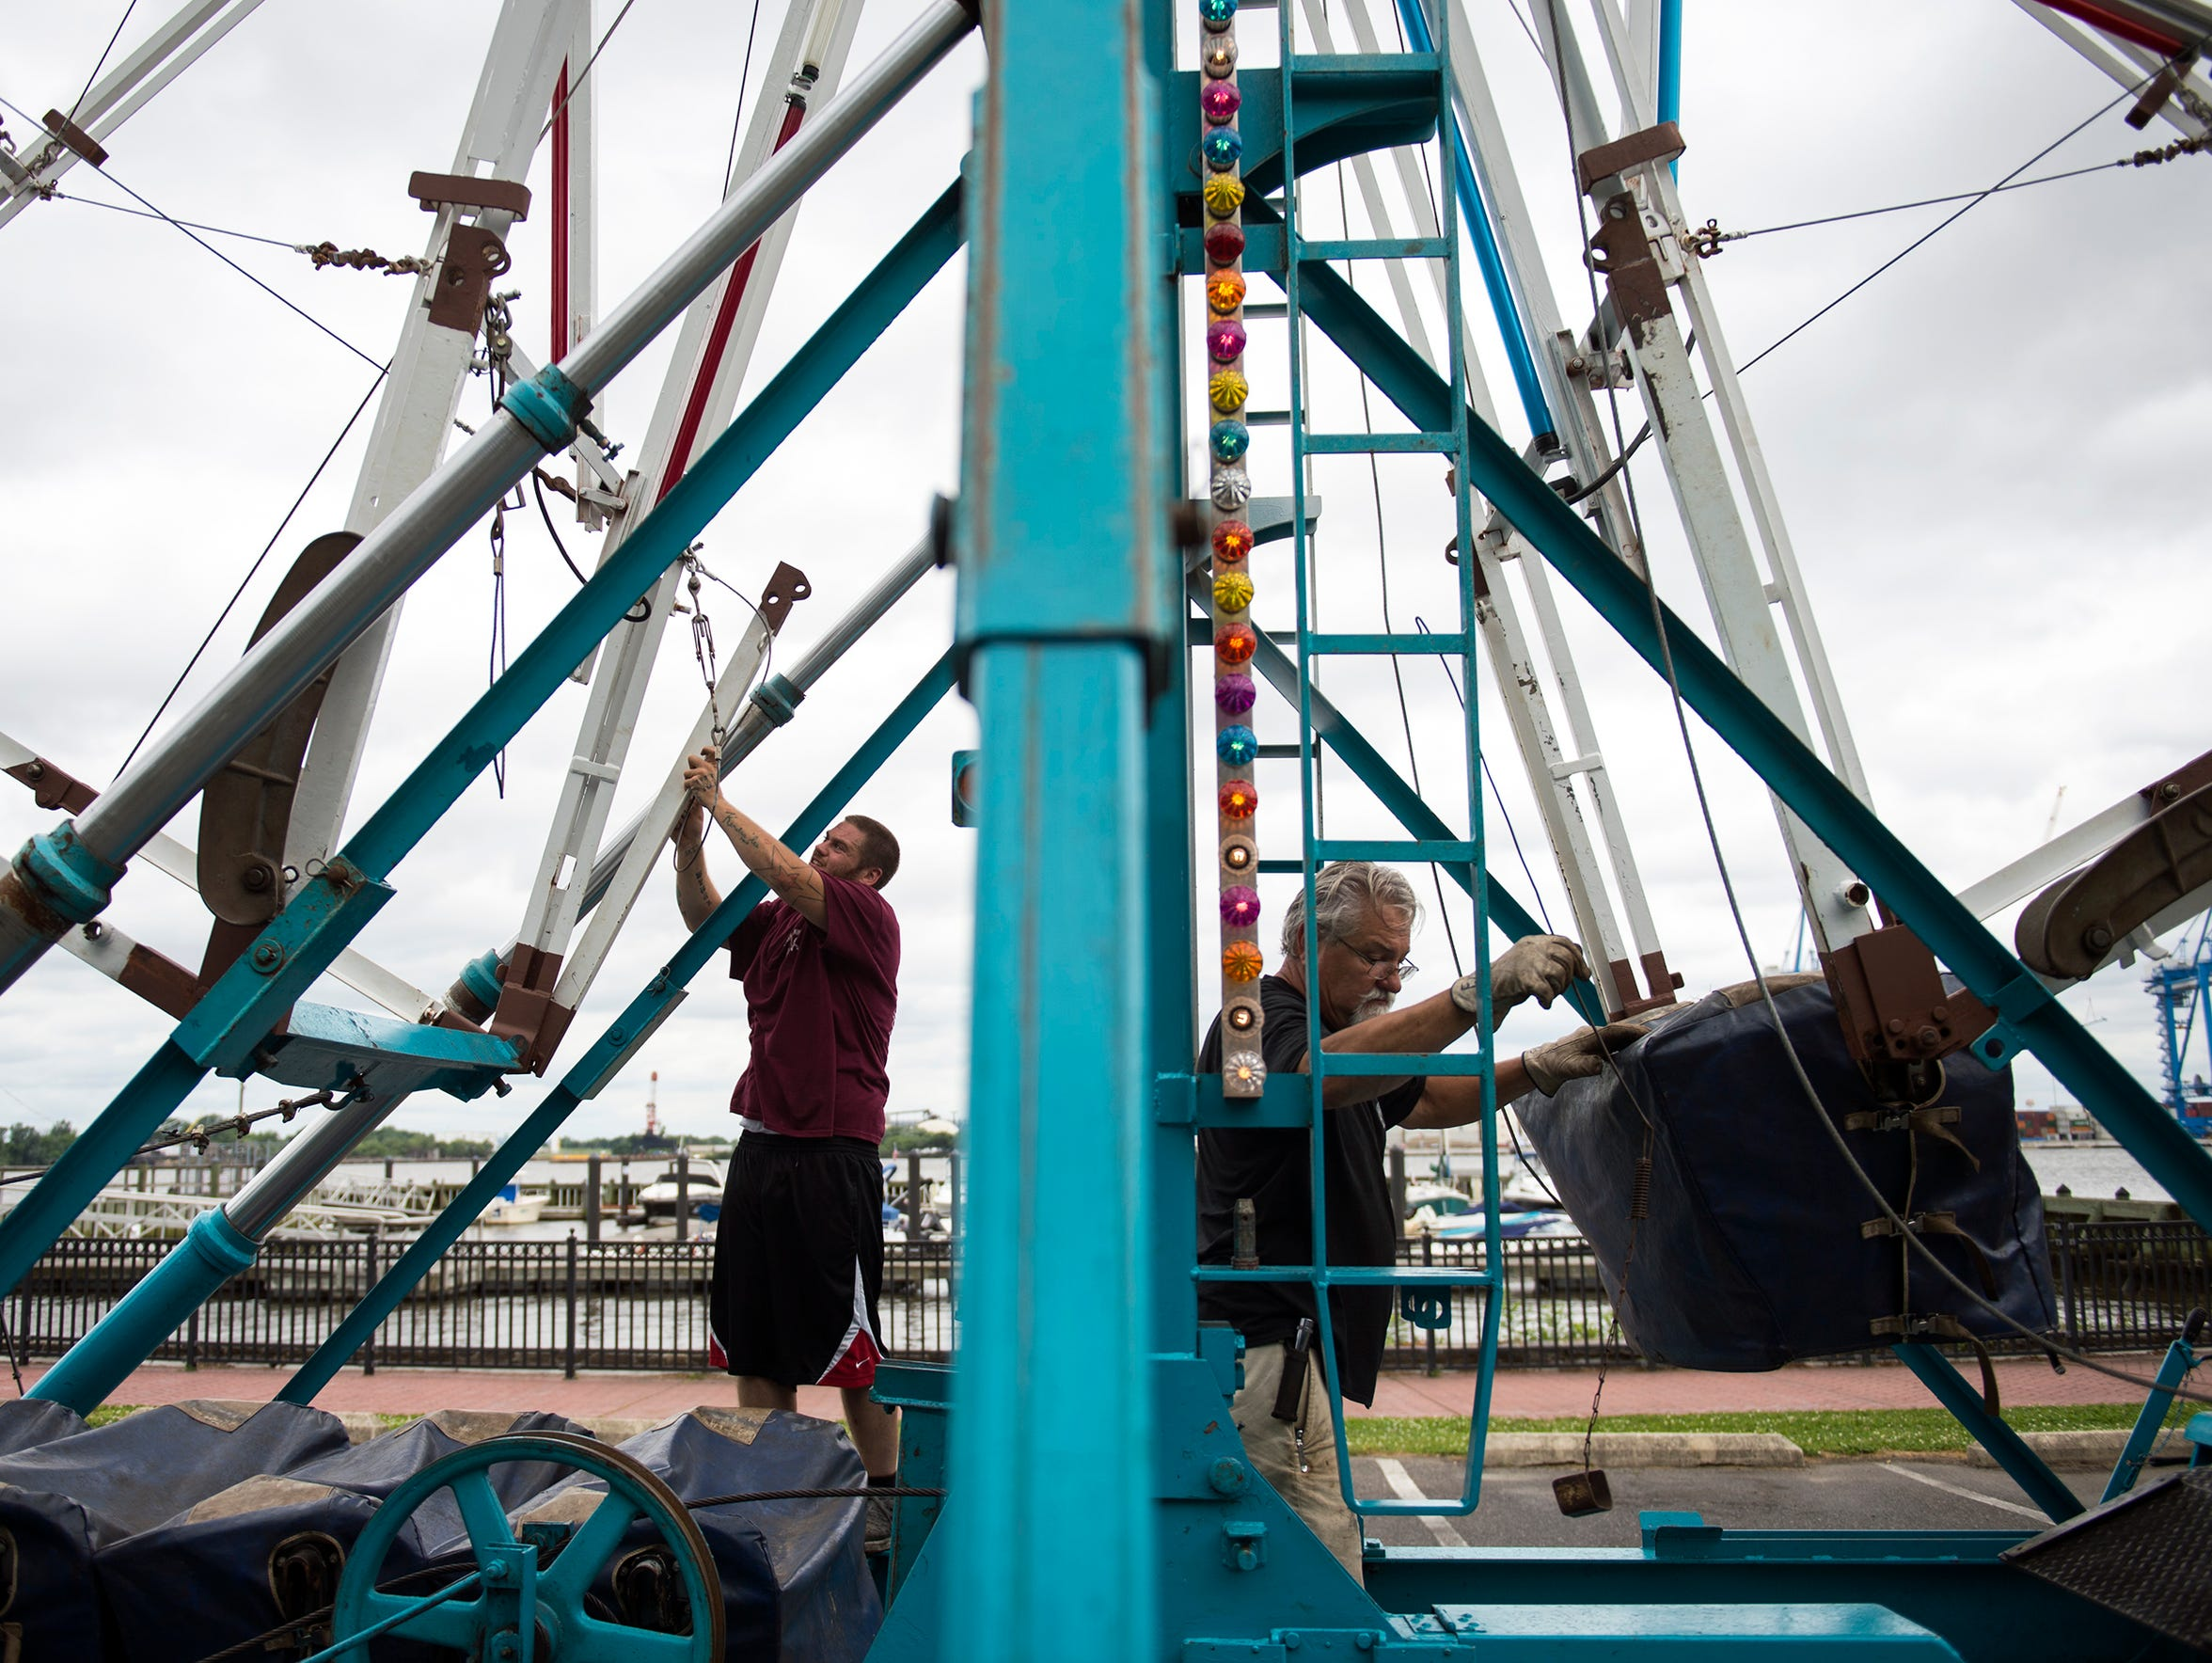 David Lynam, left, and Earl Derrickson of Lynam's Amusements set up a Ferris wheel Friday at Proprietors Park in Gloucester City. 'Not Your Mother's Music Fest' will be held Saturday, June 23.